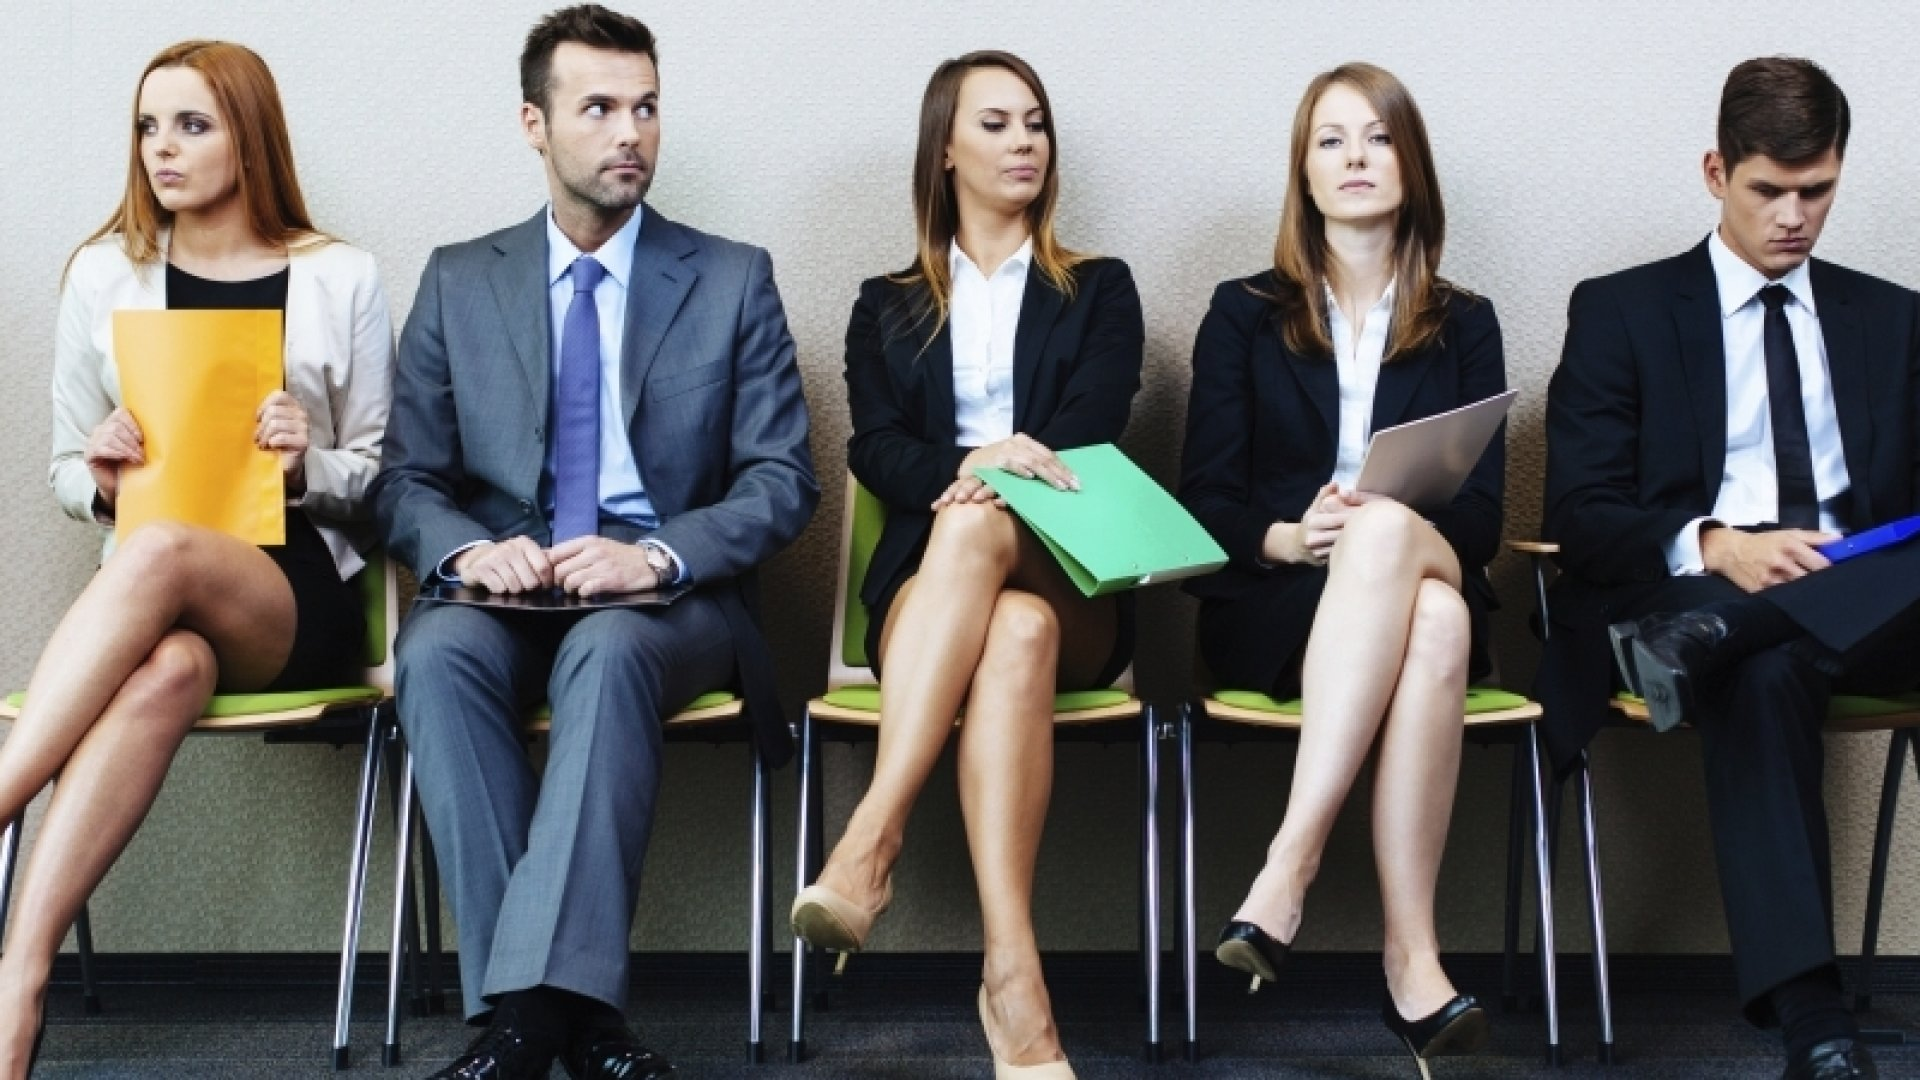 5 Reasons to Hire for Potential Over Experience